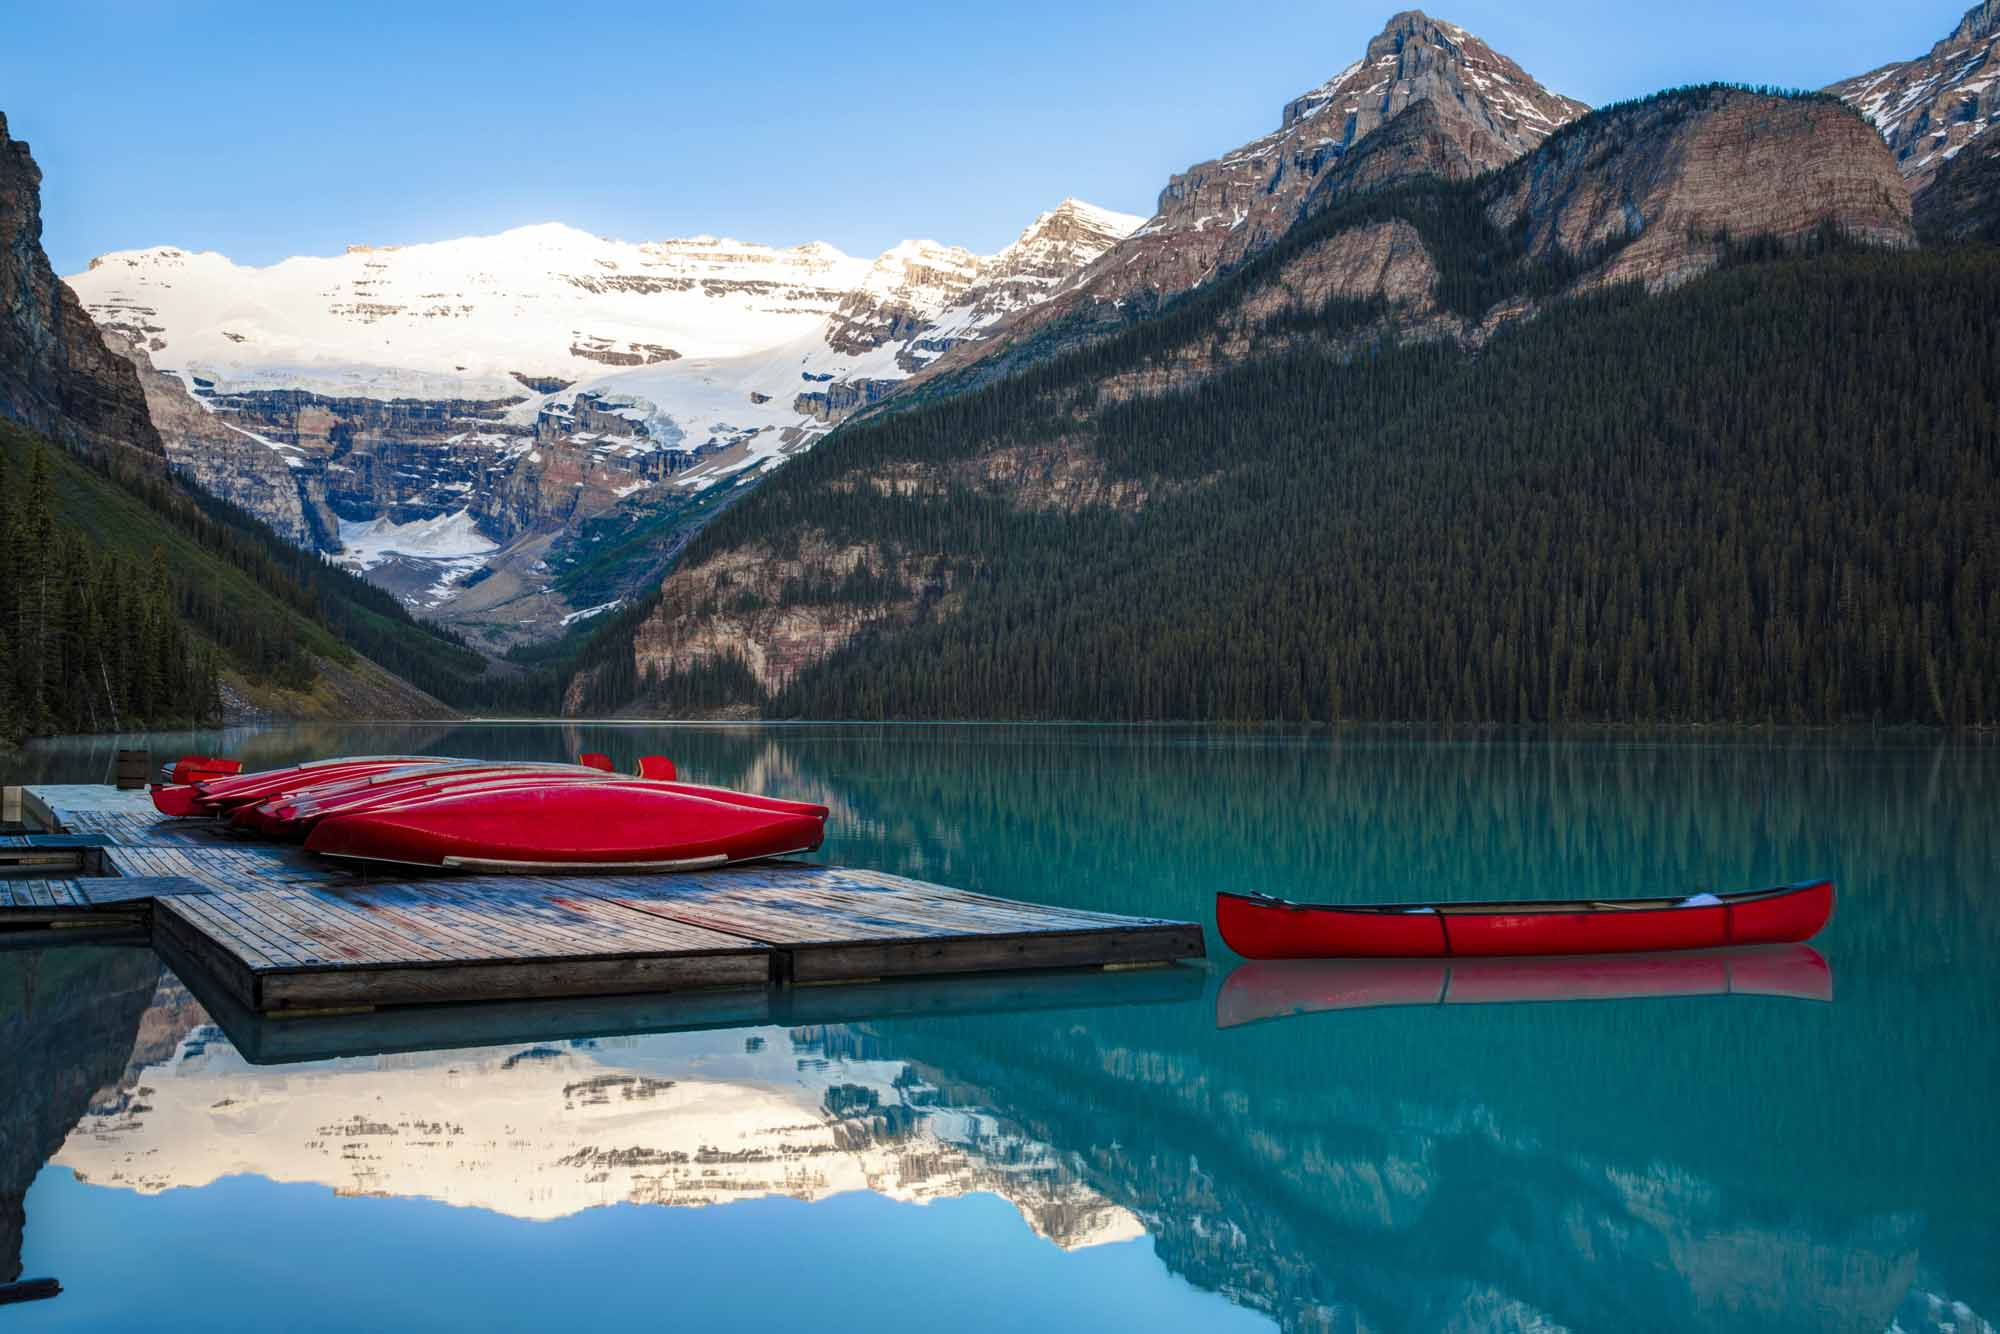 Canoes at Banff National Park